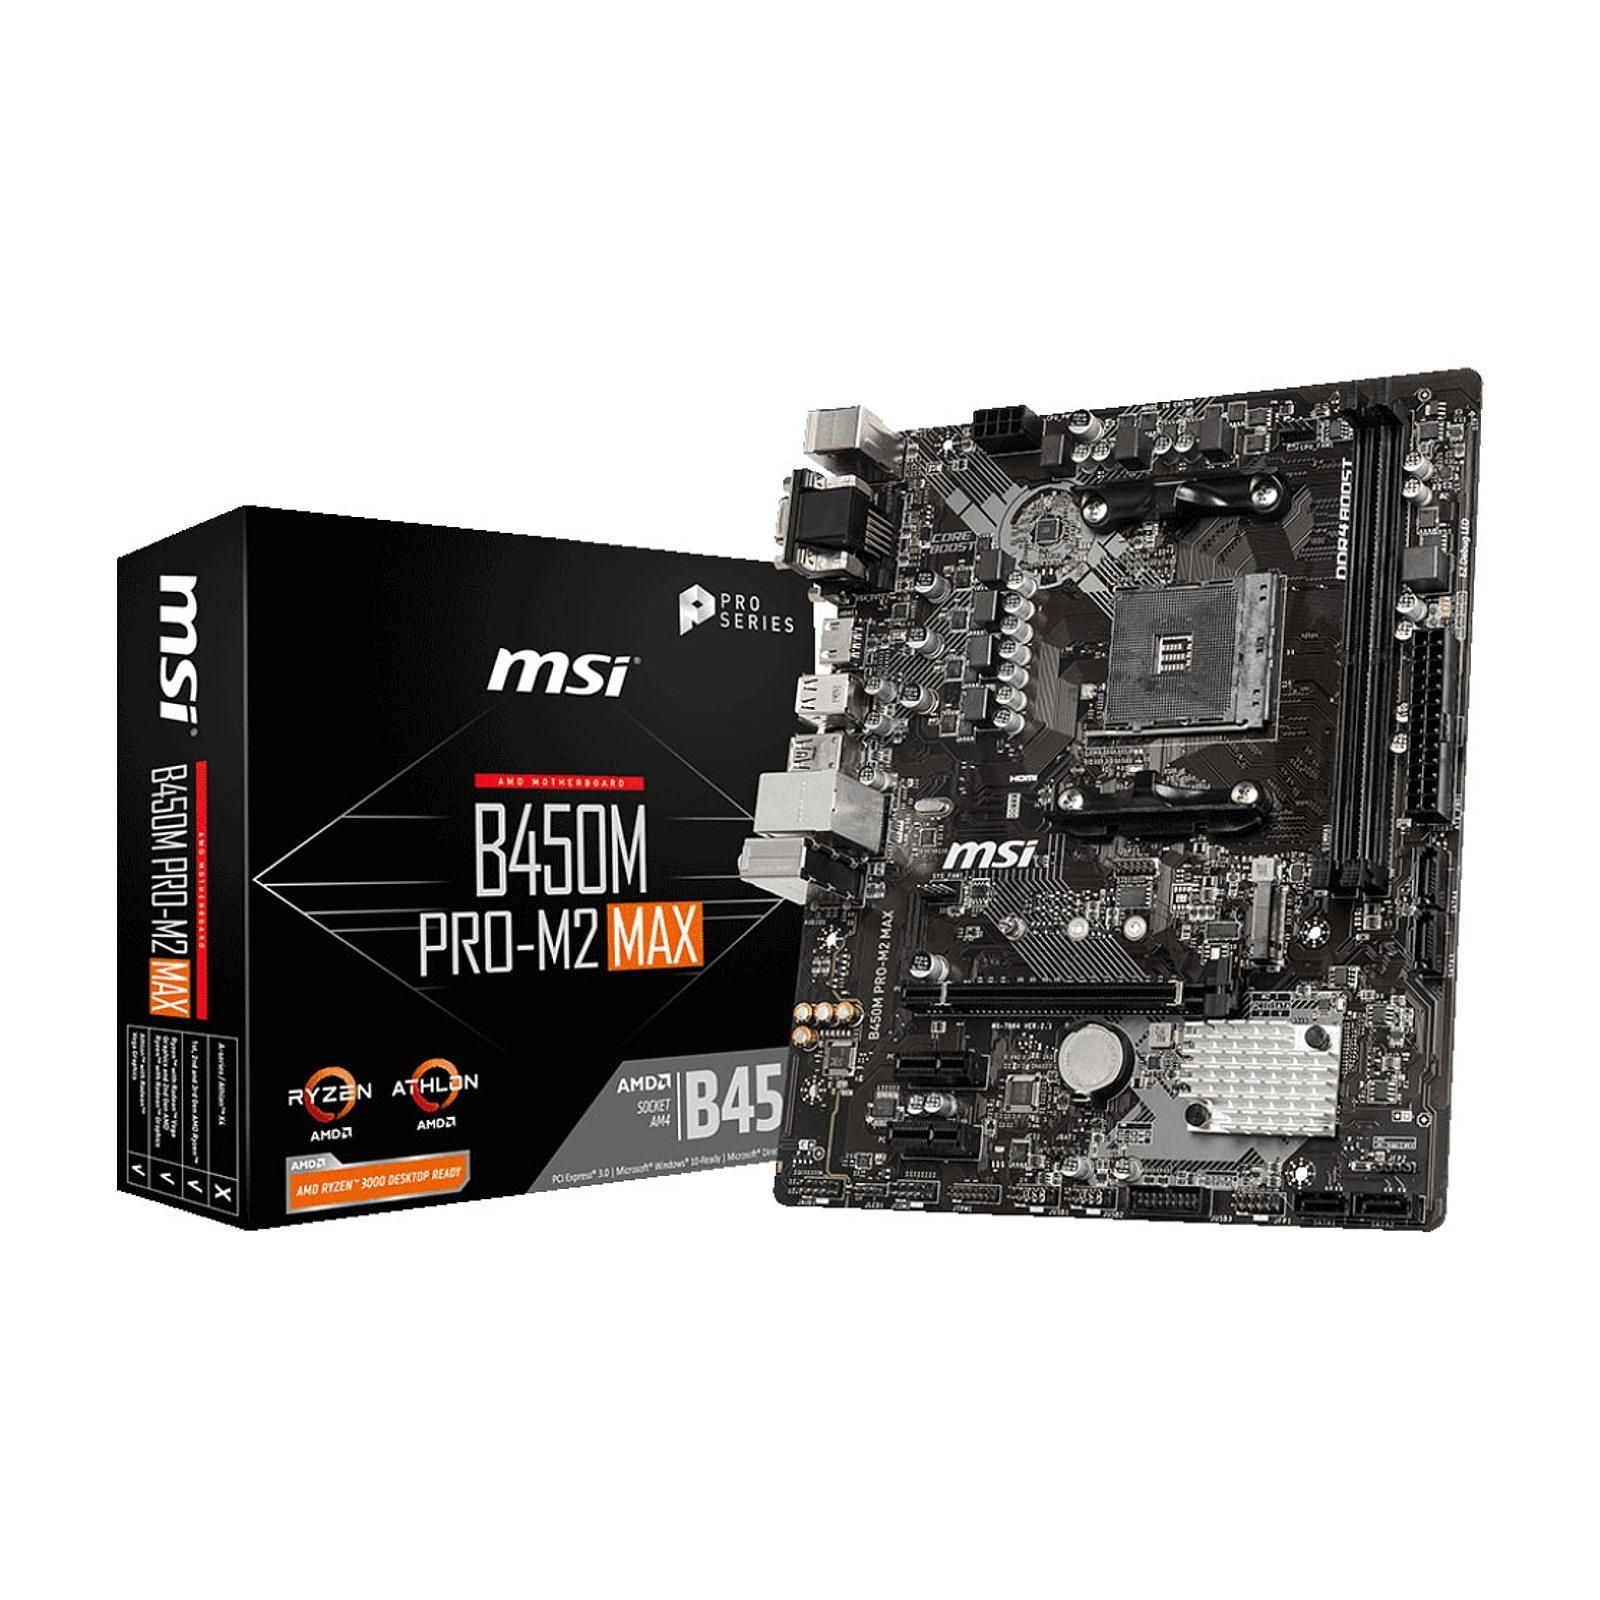 Carte mère MSI B450M PRO-M2 MAX Socket AM4 (AMD B450) mATX, informatique ile de la Réunion 974